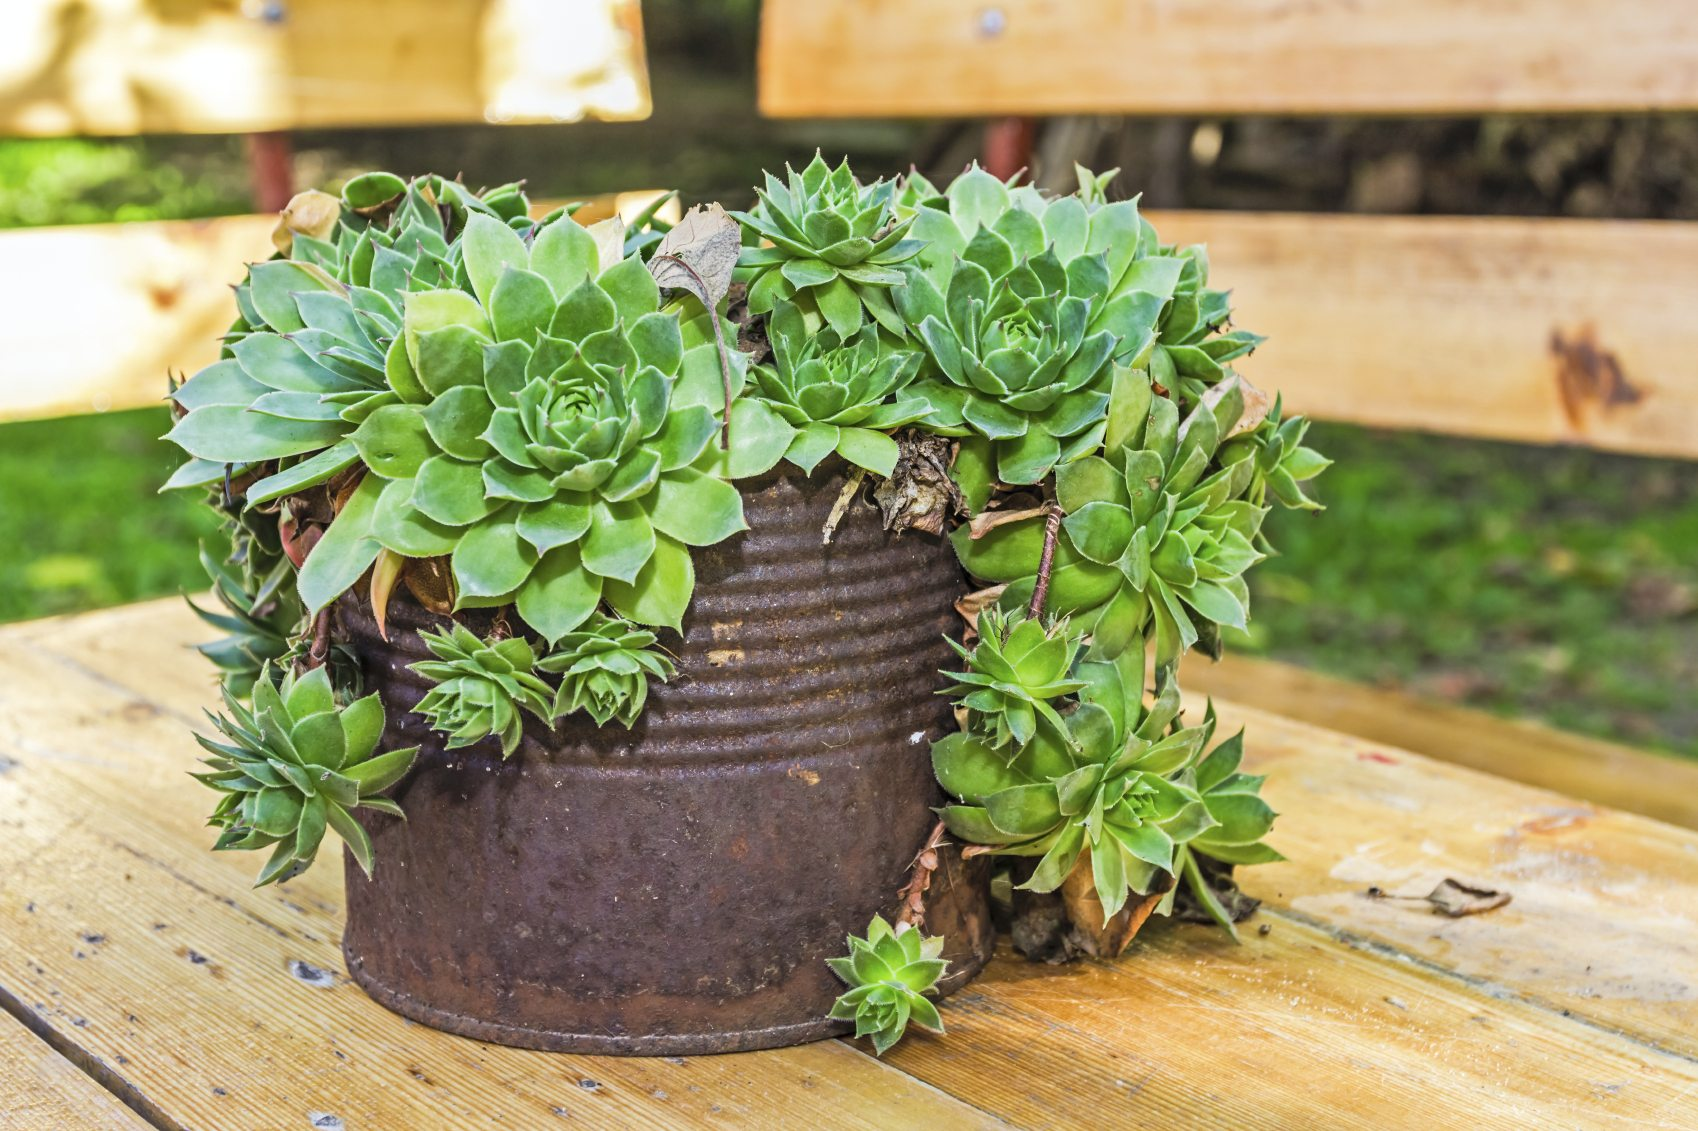 Cactus Planting Pots Creative Containers For Succulents Using Interesting